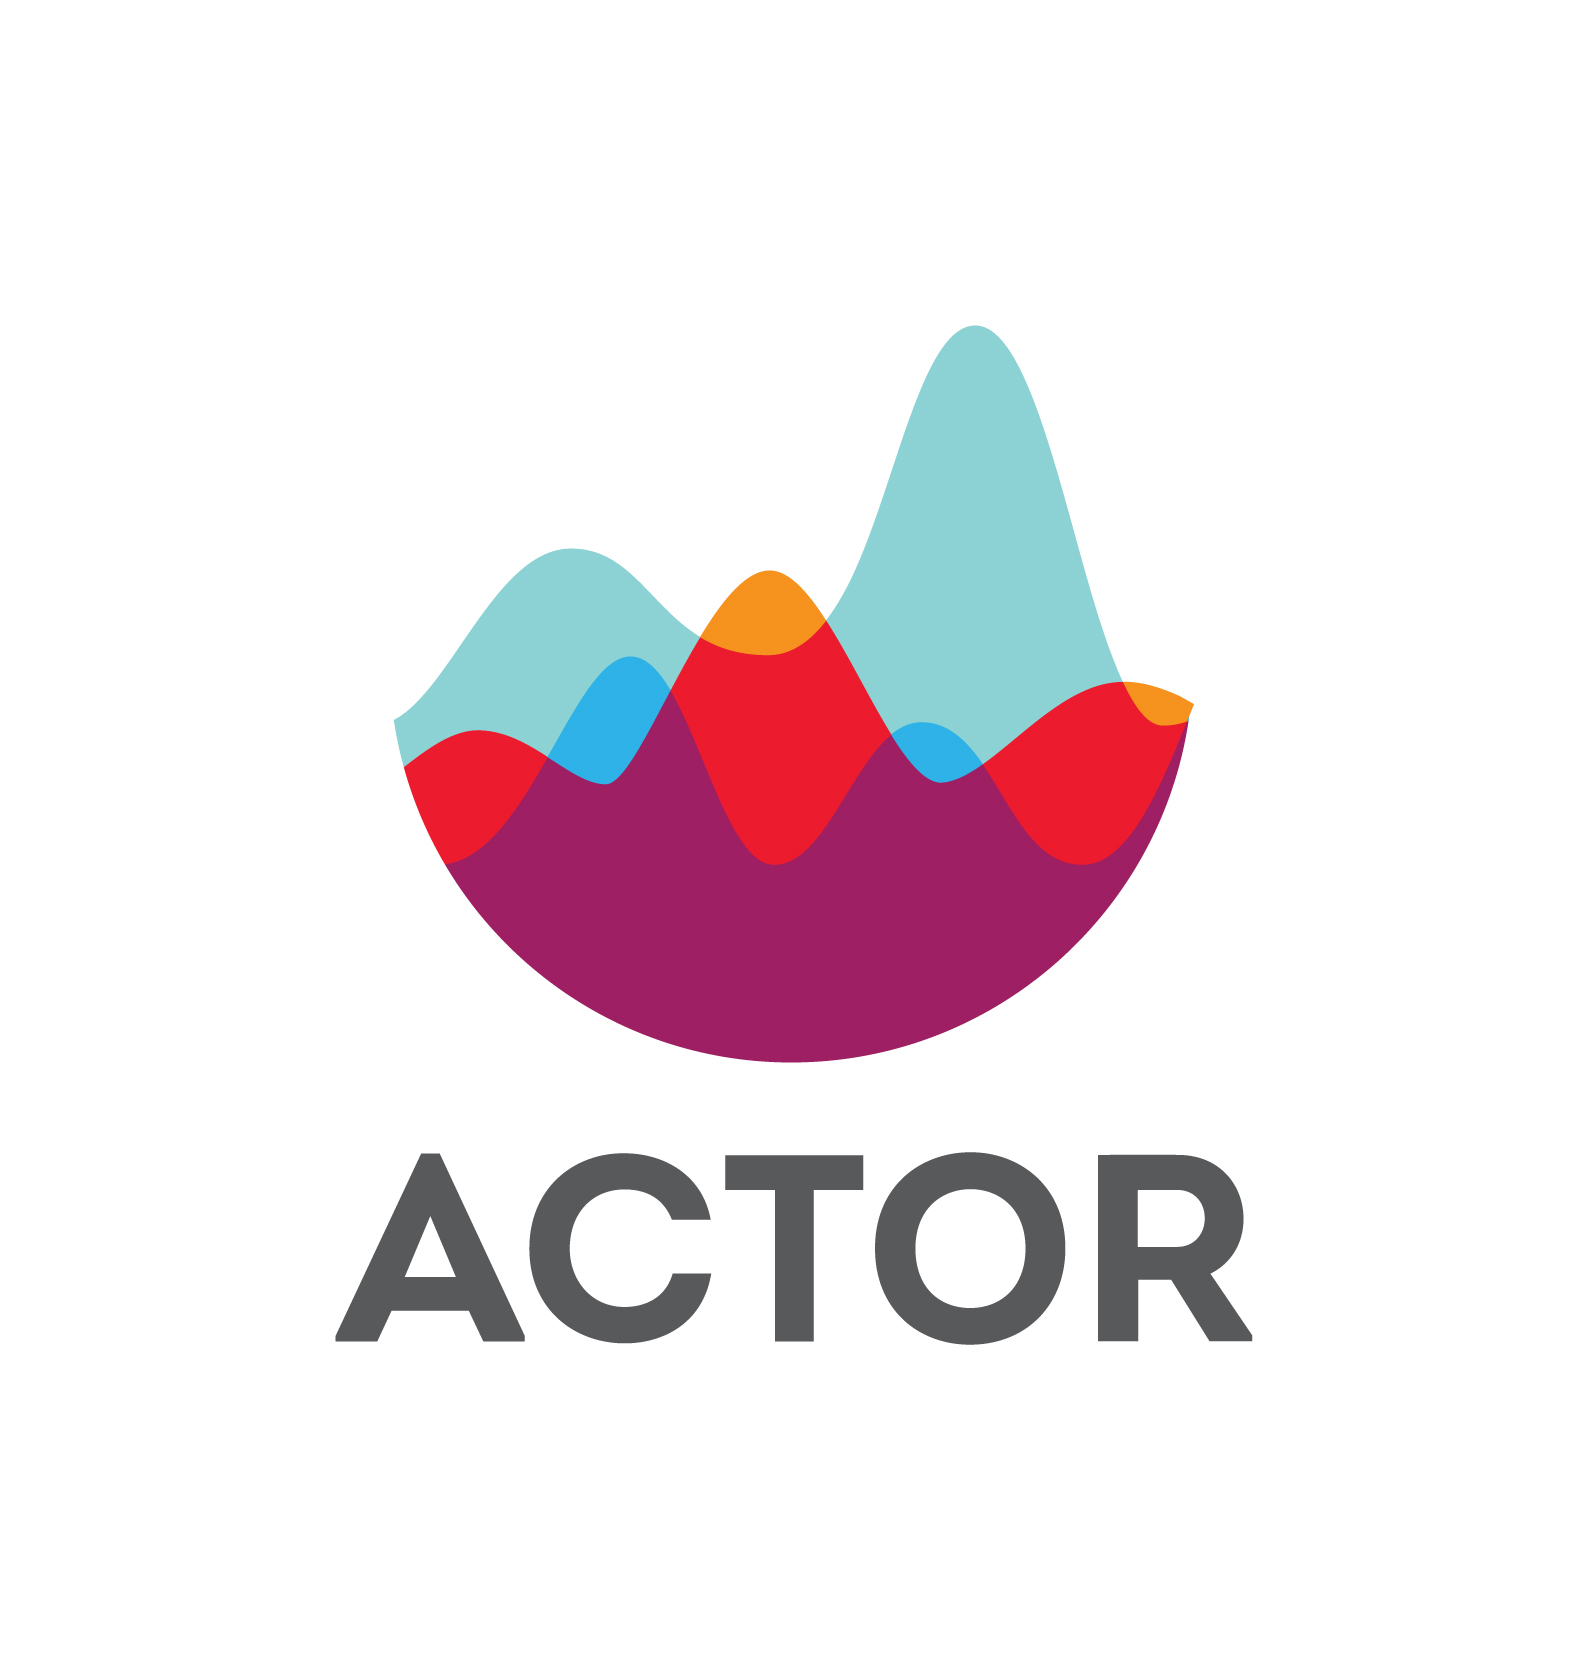 ACTOR_logo_colour_acronym-only.jpg